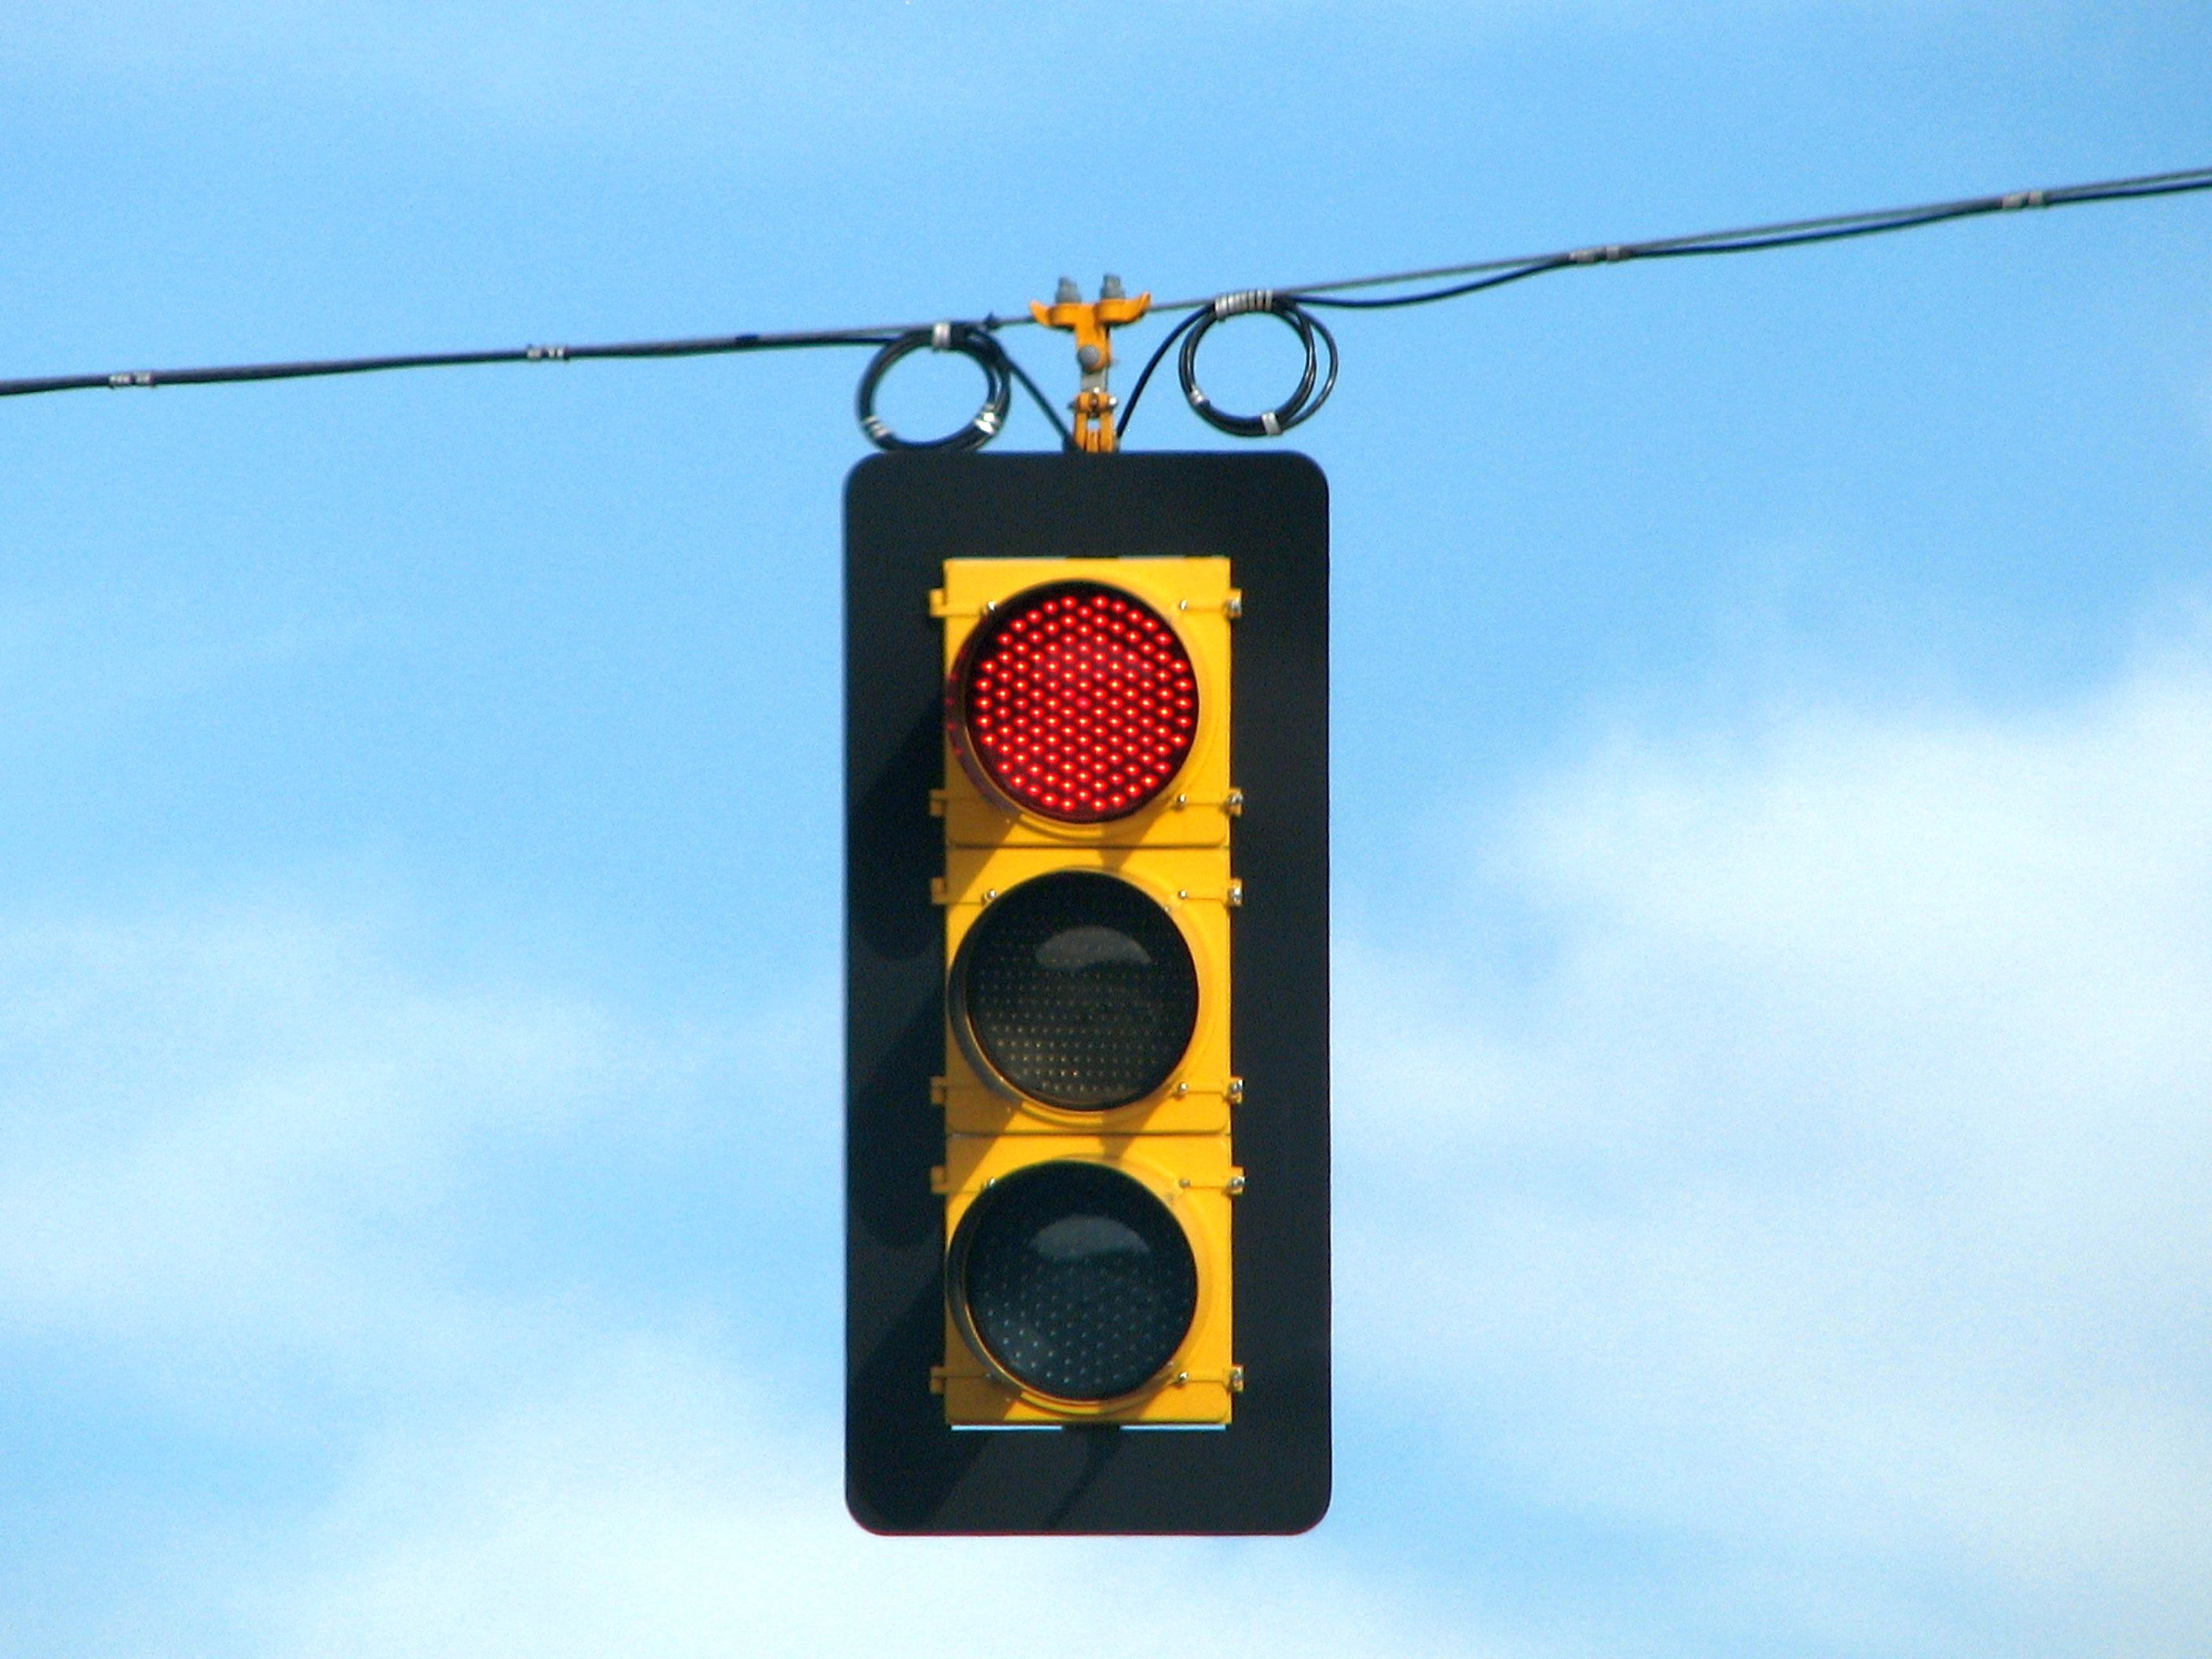 10 Crazy Red Light Camera Cases Running Lights With Up Down Counter